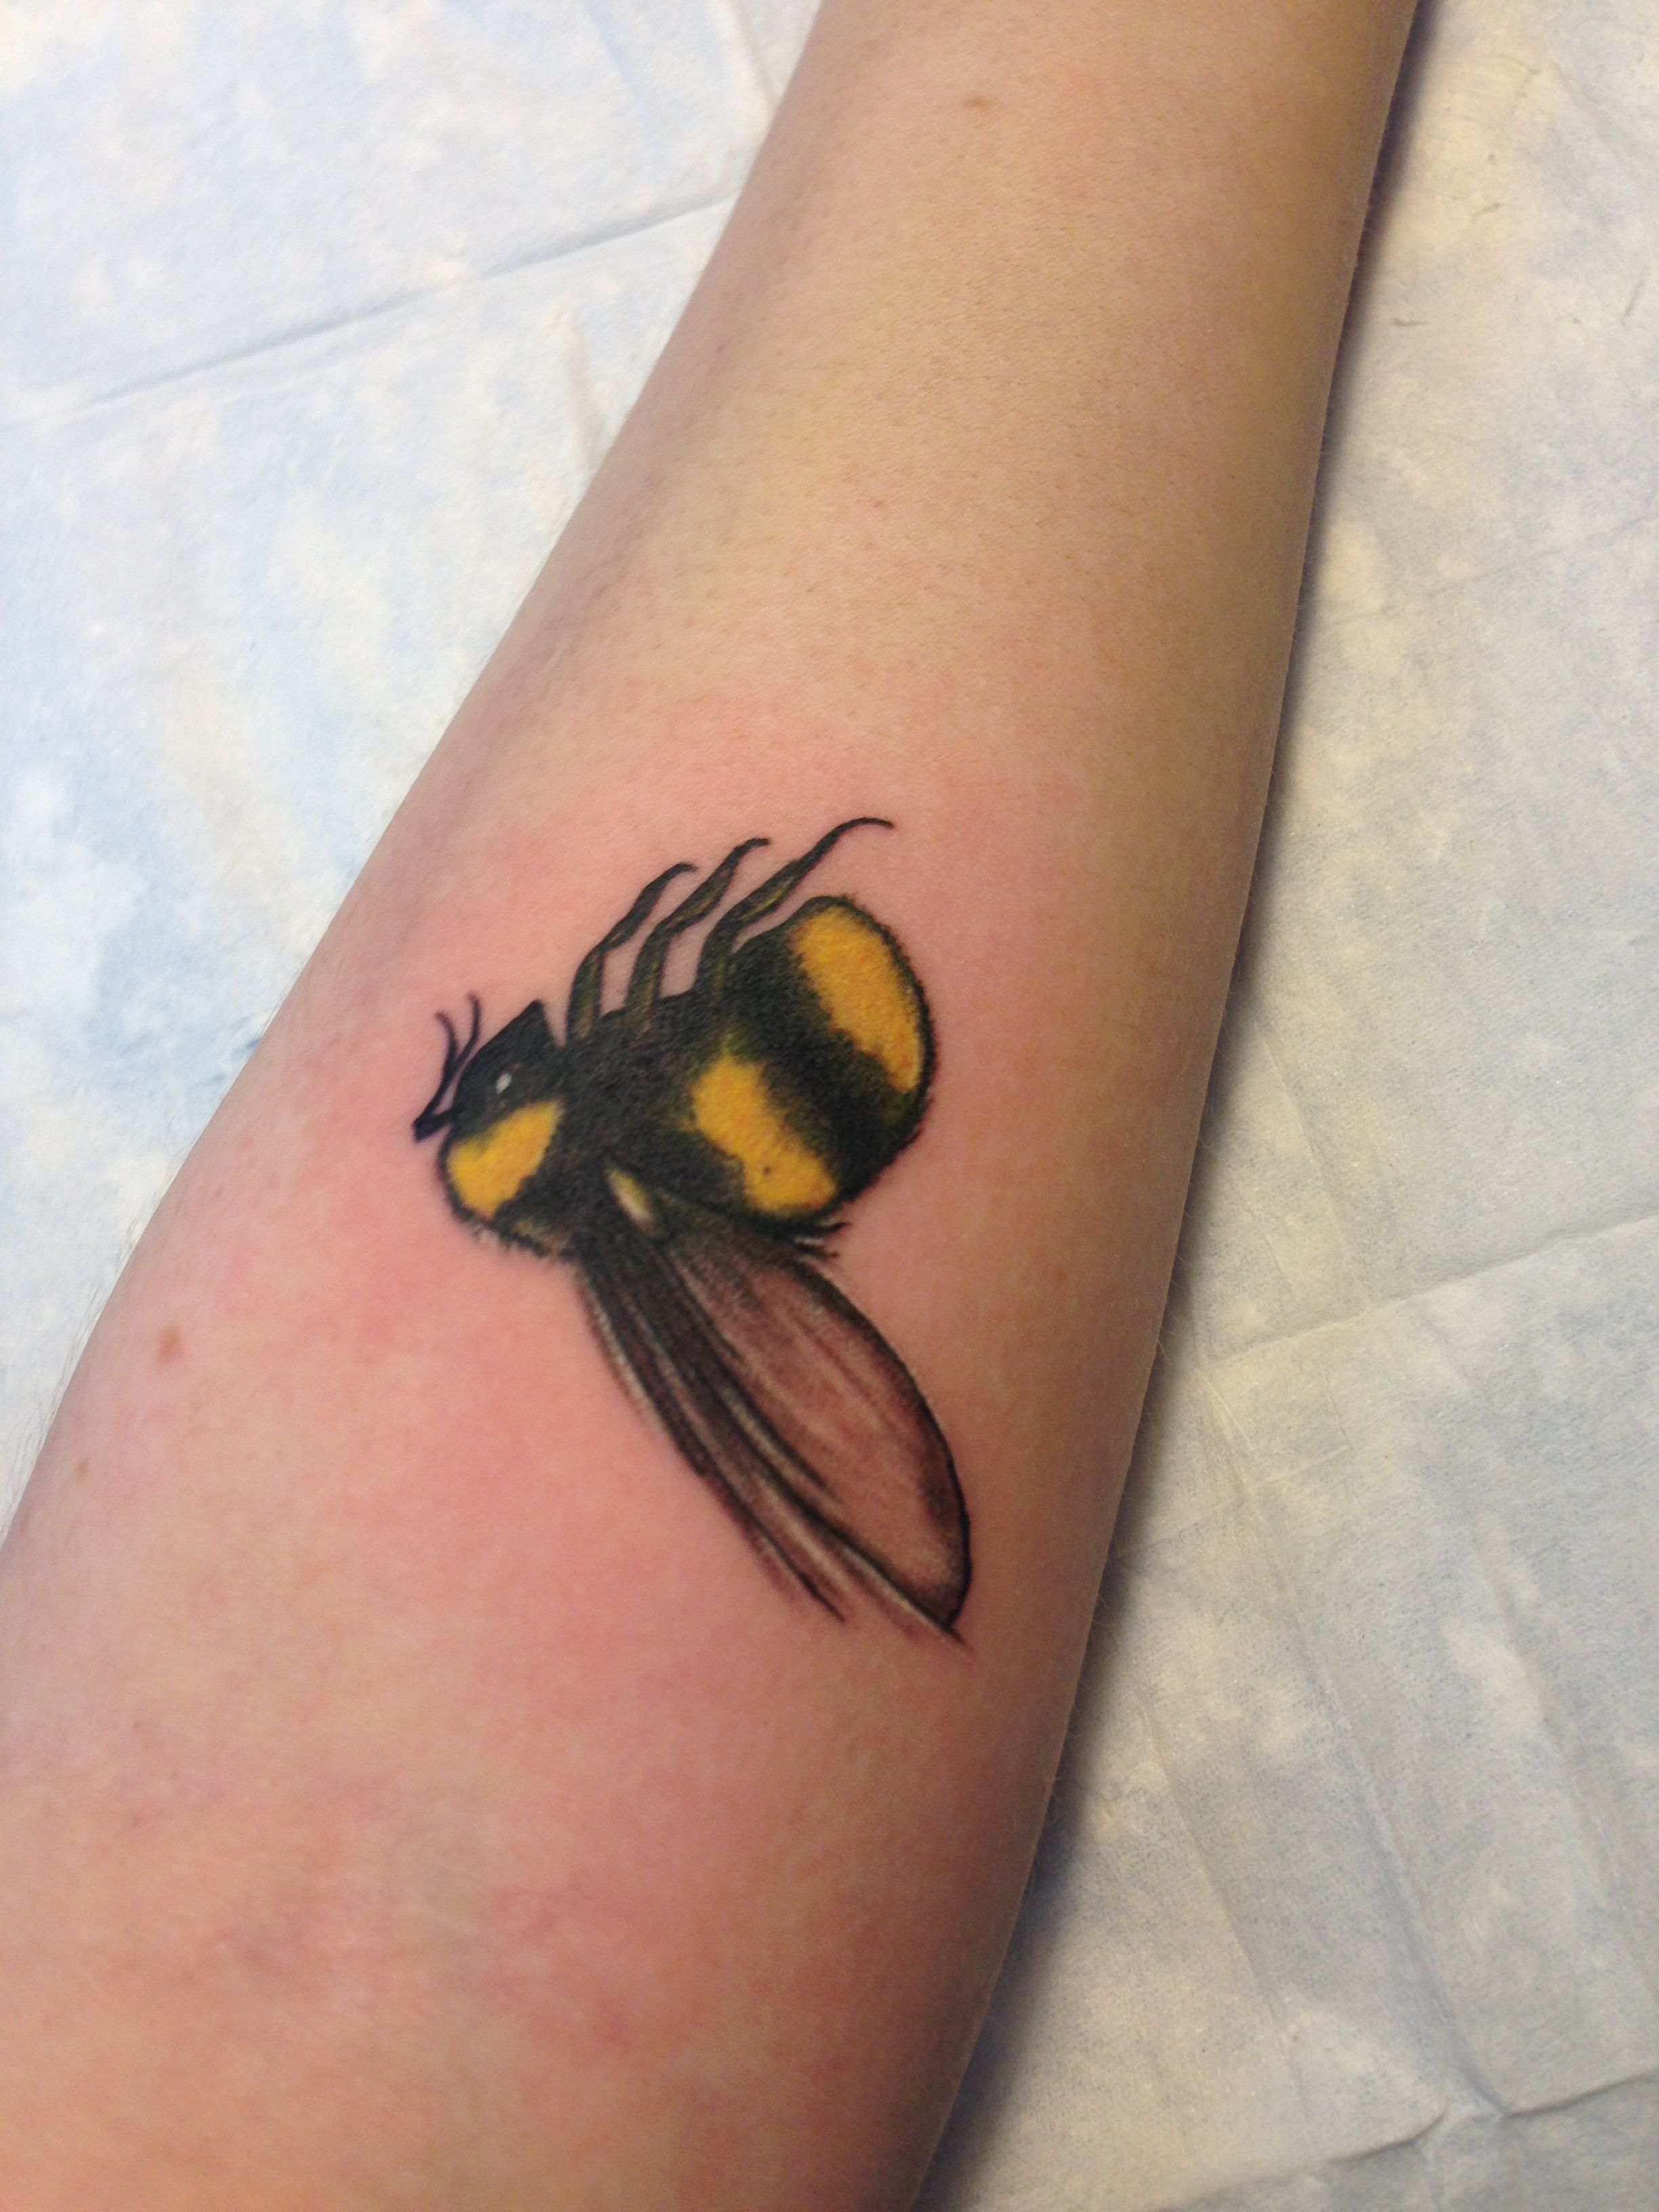 Honey Betekenis Bumble Bee Tattoo Tattoos Pinterest Bumble Bee